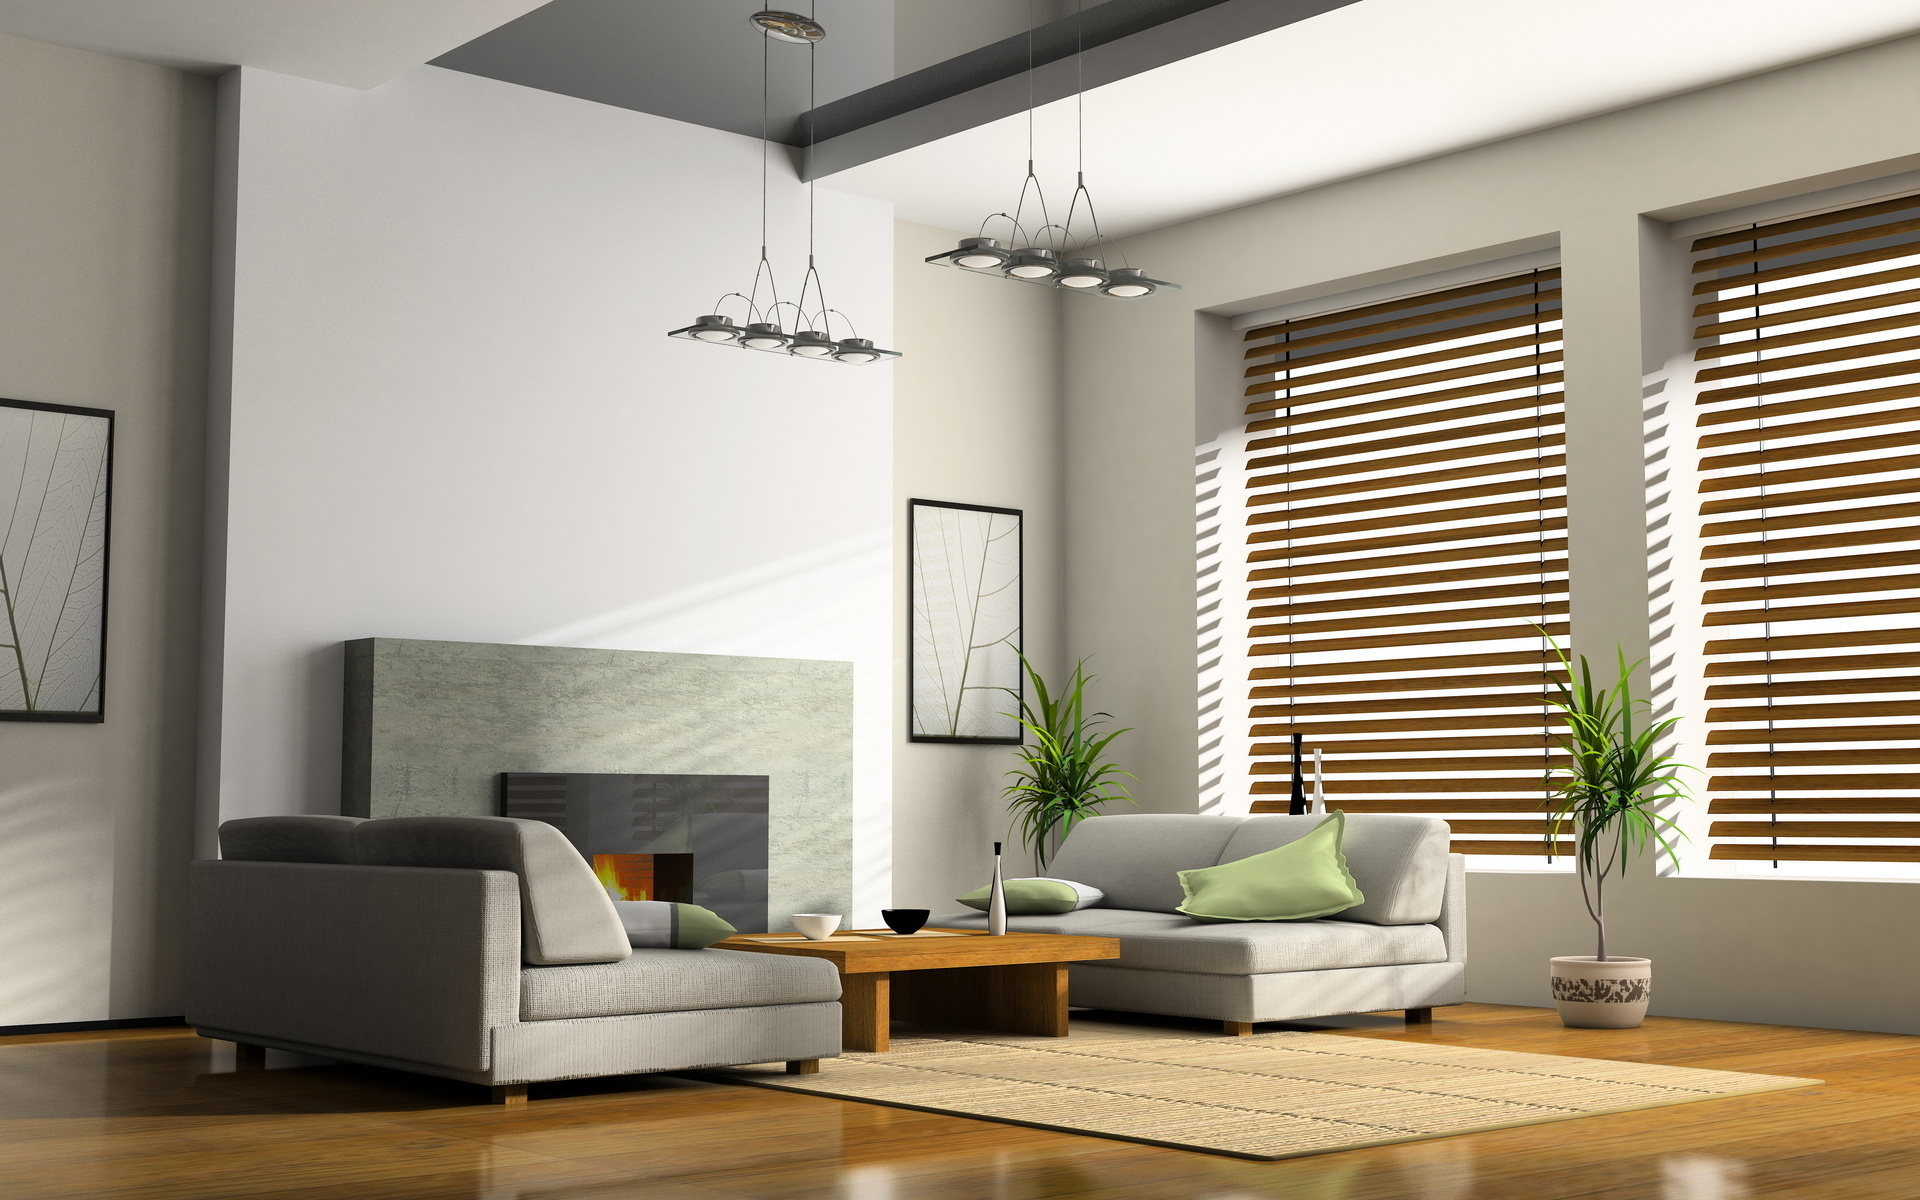 3d interior design desktop wallpaper 60899 1920x1200 px for 3d interior design online